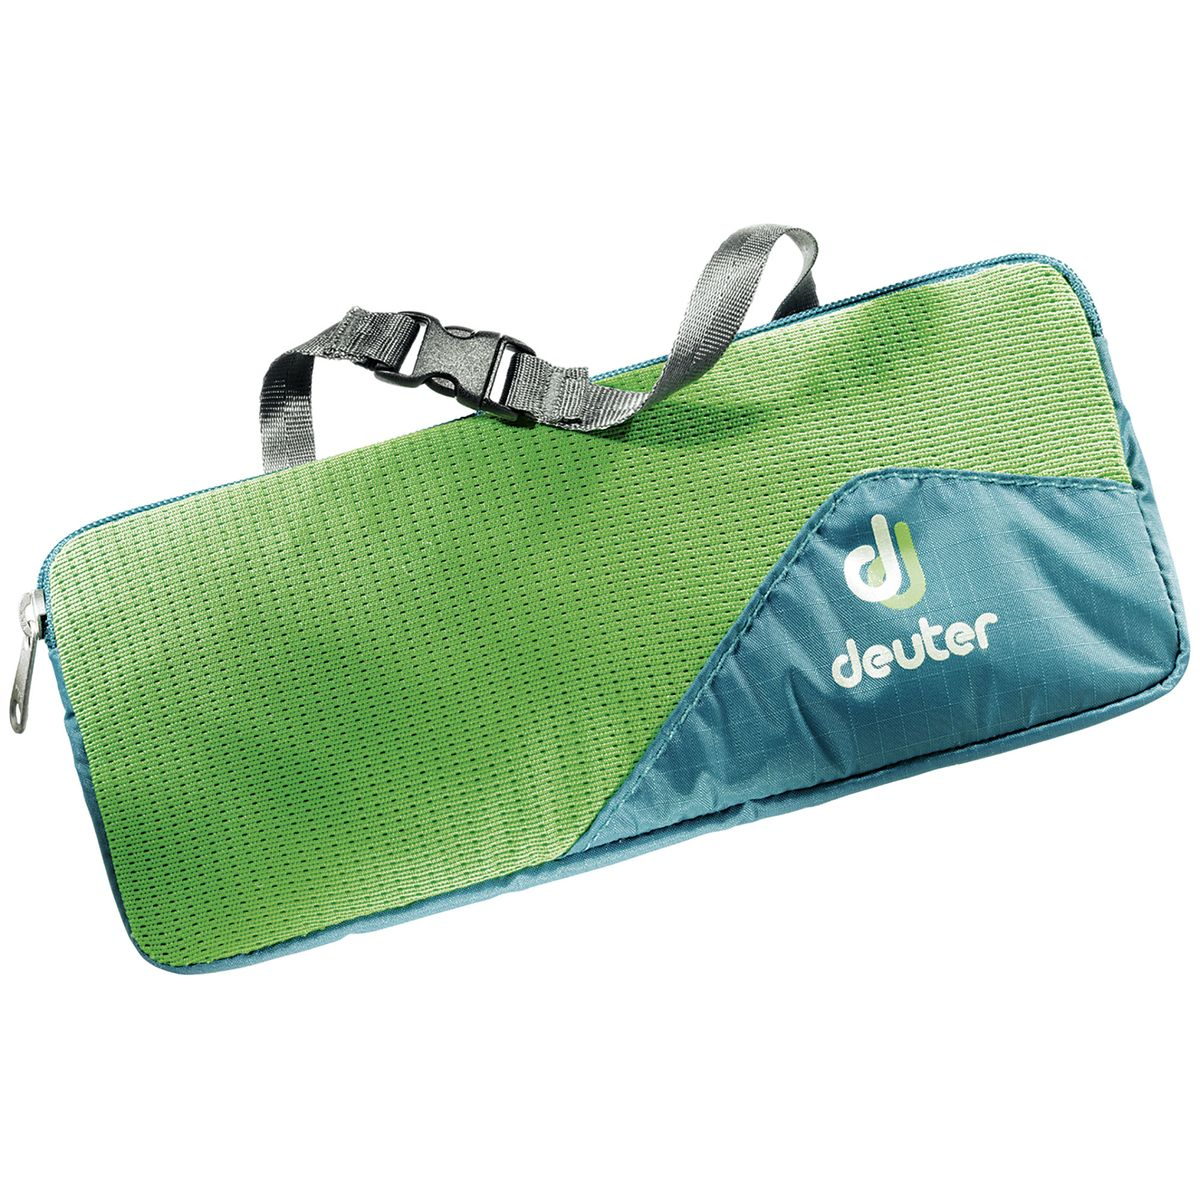 deuter beauty case  Acquista deuter WASH BAG LITE I - astuccio beauty case | ROSE Bikes